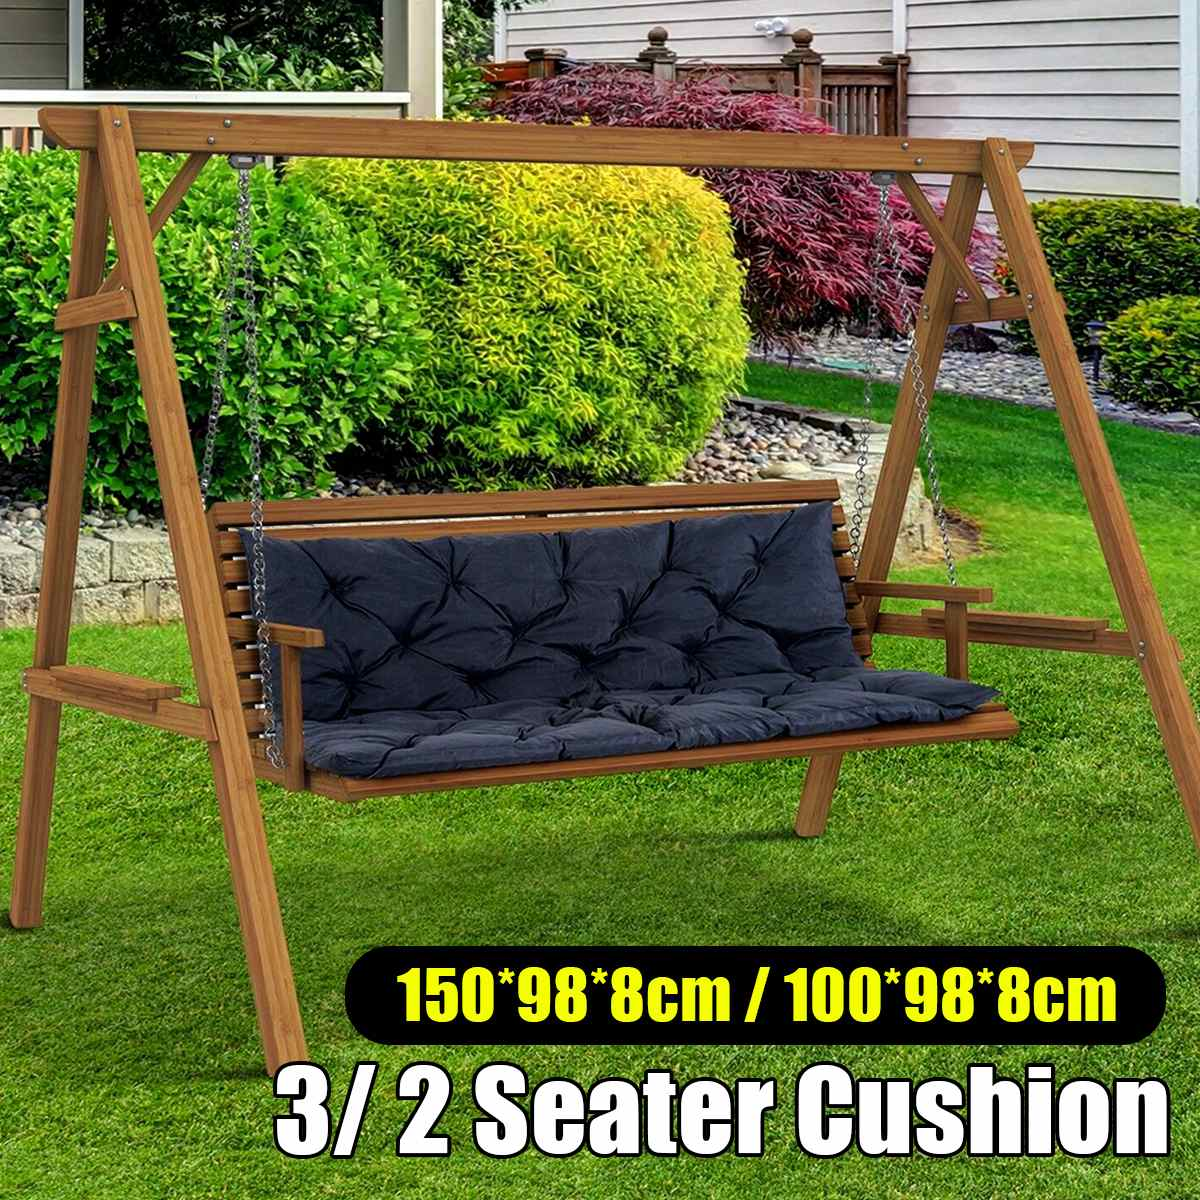 Garden Swing Seat Cover Cushion Canopy Dust Covers Dustproof Chair Replacement